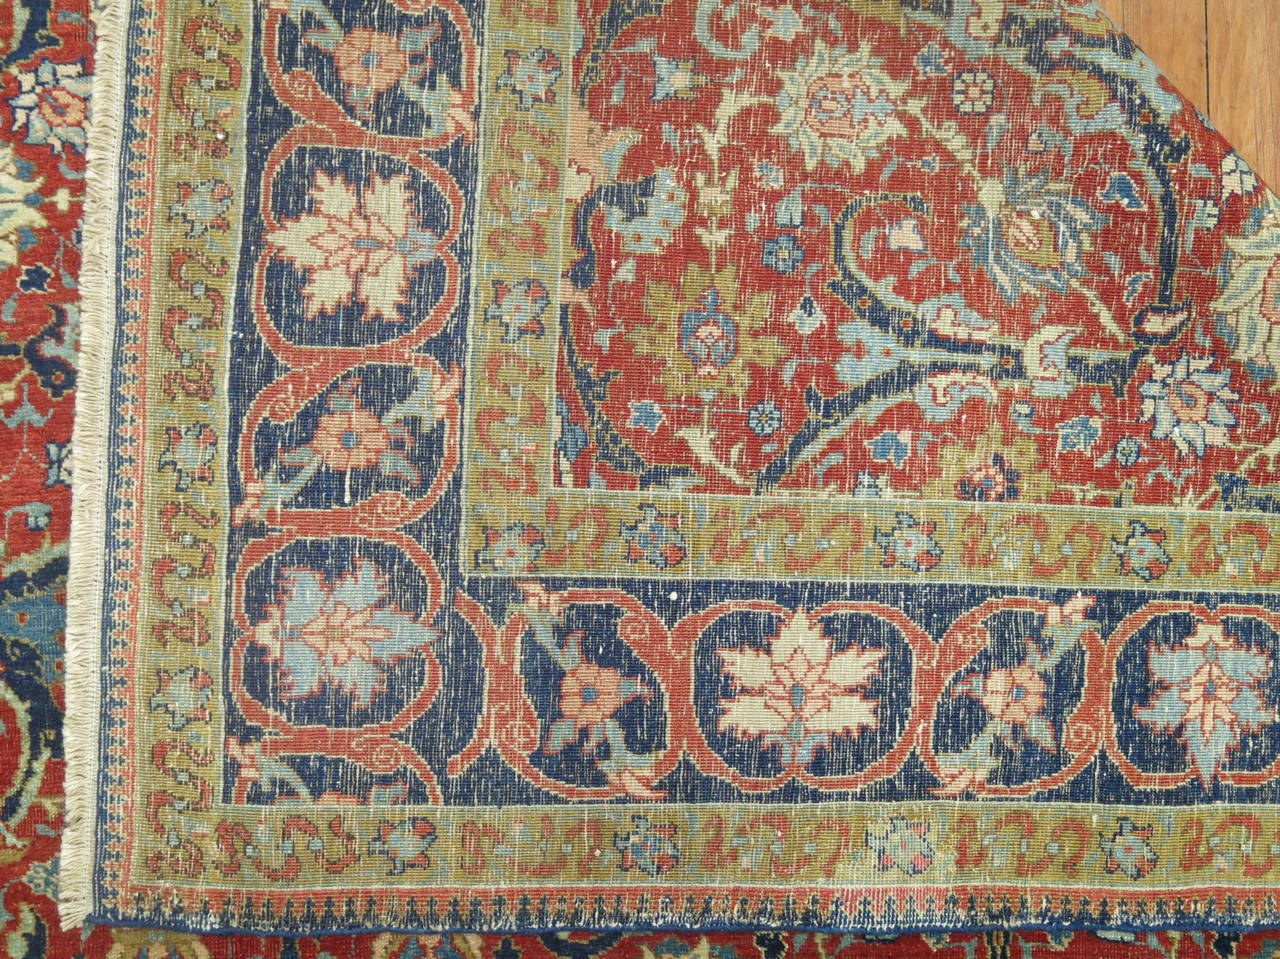 Exquisite finely woven late 19th century Persian Tabriz. Since the middle of the 19th century, Tabriz has lead a resurgence in Persian carpet-weaving both for domestic use and for export. With strict standards of craftsmanship and quality of